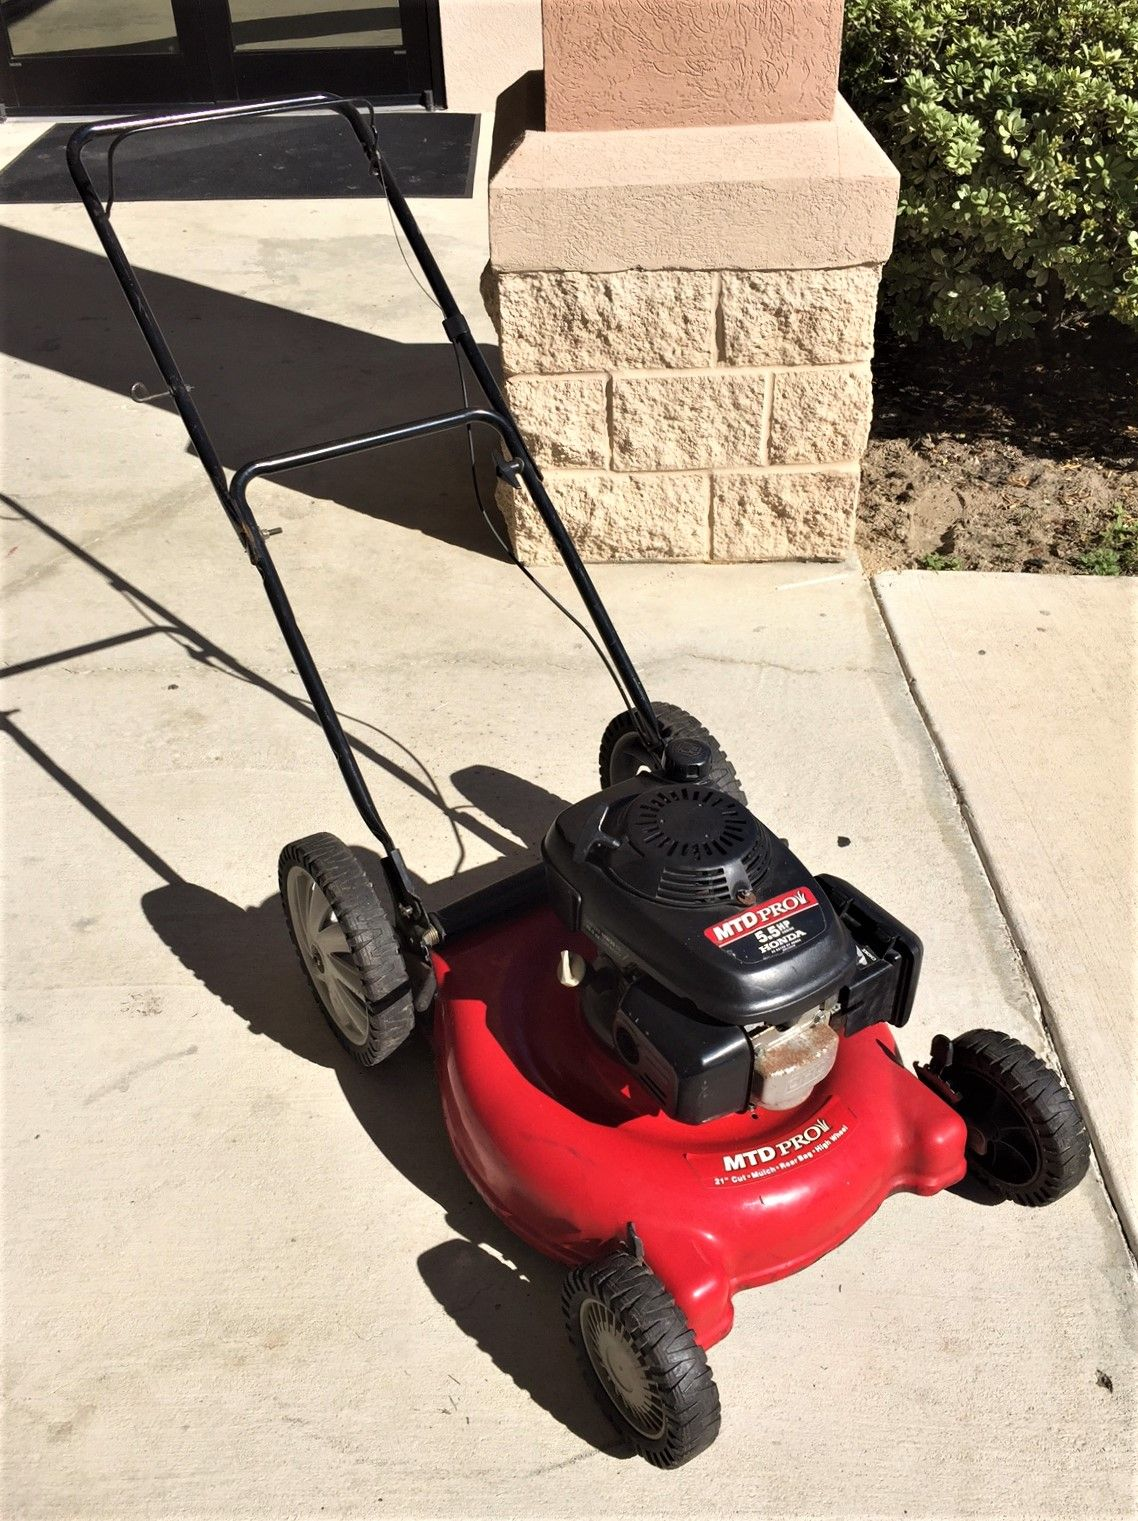 Mtd Pro 11a 588q795 21 Lawn Mower With 5 Hp Honda Gas Ed Engine For 189 99 Available At Gadgets And Gold